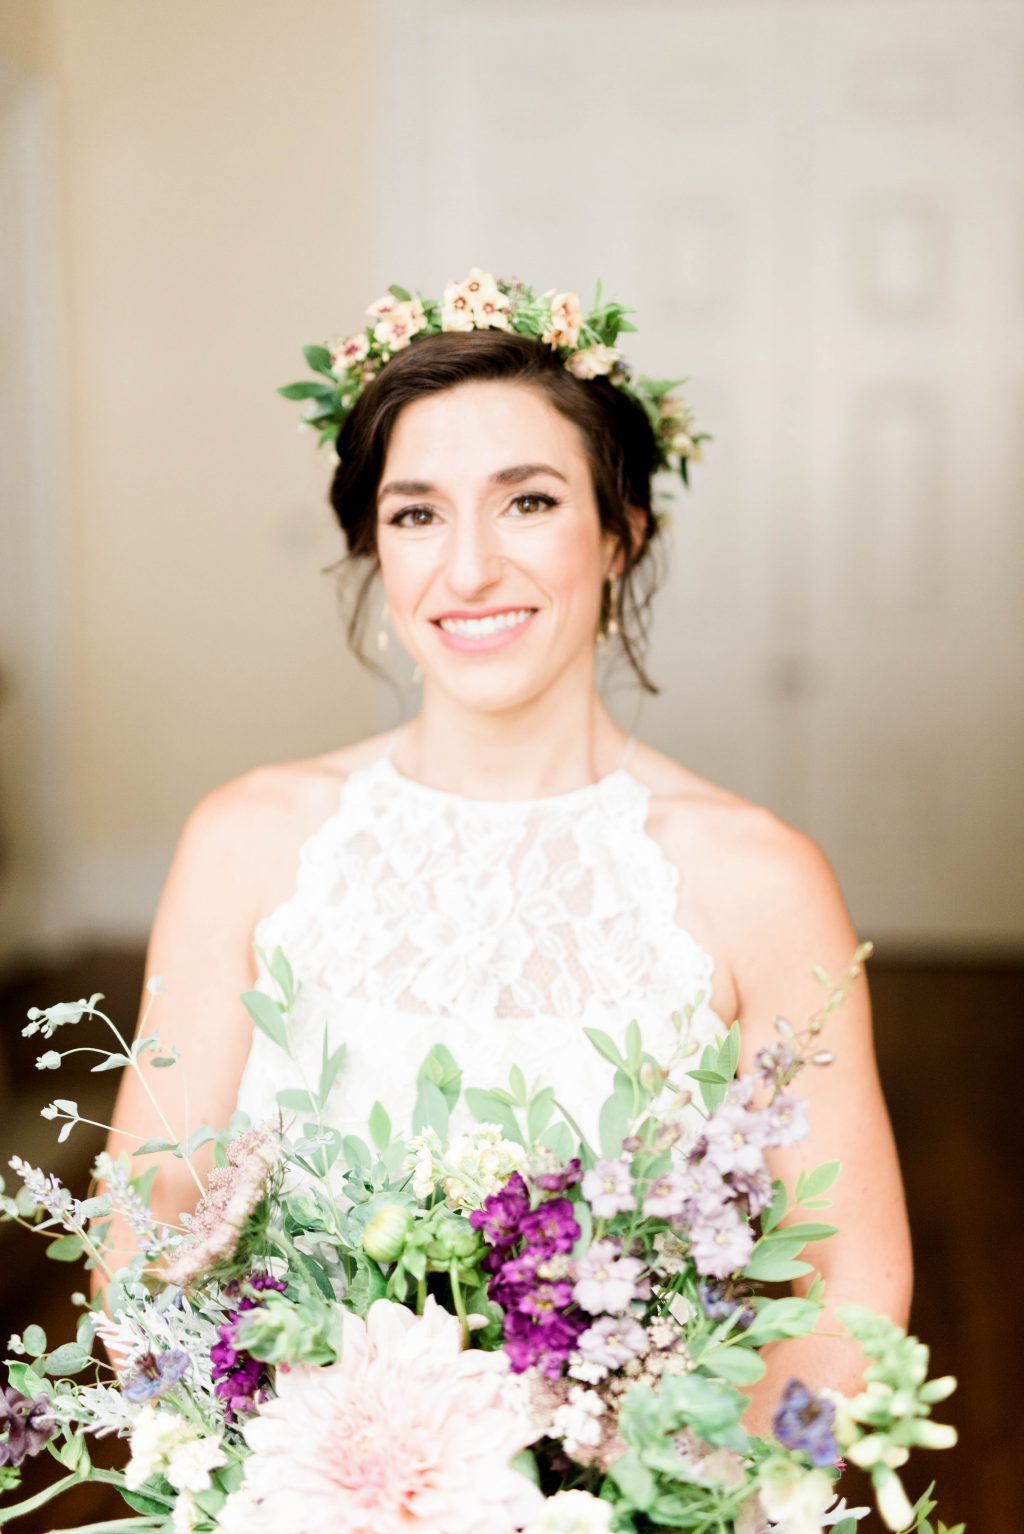 awbury-arboretum-wedding-DIY-boho-summer-haley-richter-photography-051